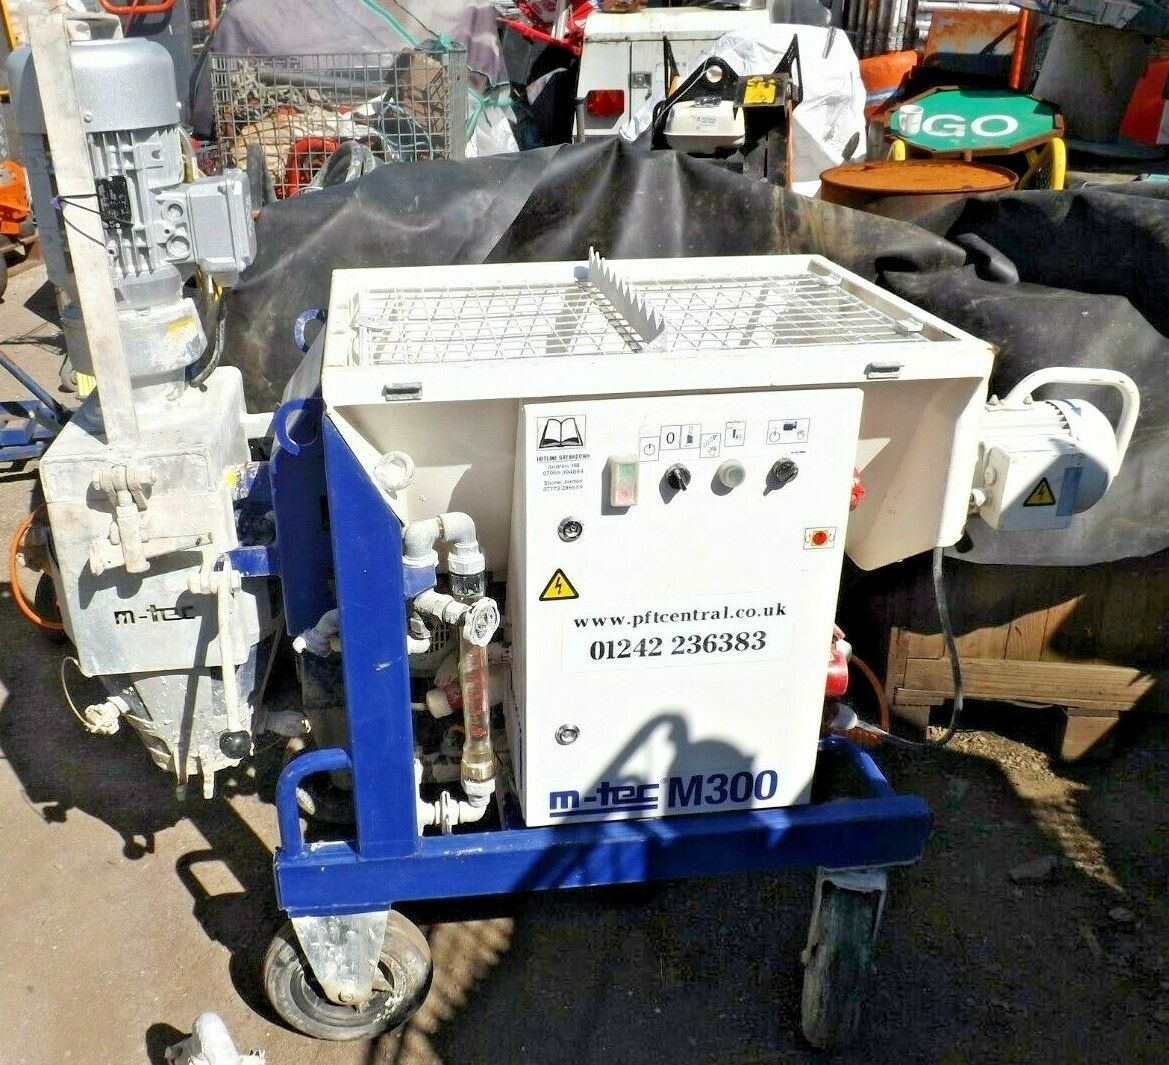 M-Tec Screeding Machine - Used - M-Tec M300 Plastering / Rendering / Screeding MachineMachine Comes With Accessories Pictured